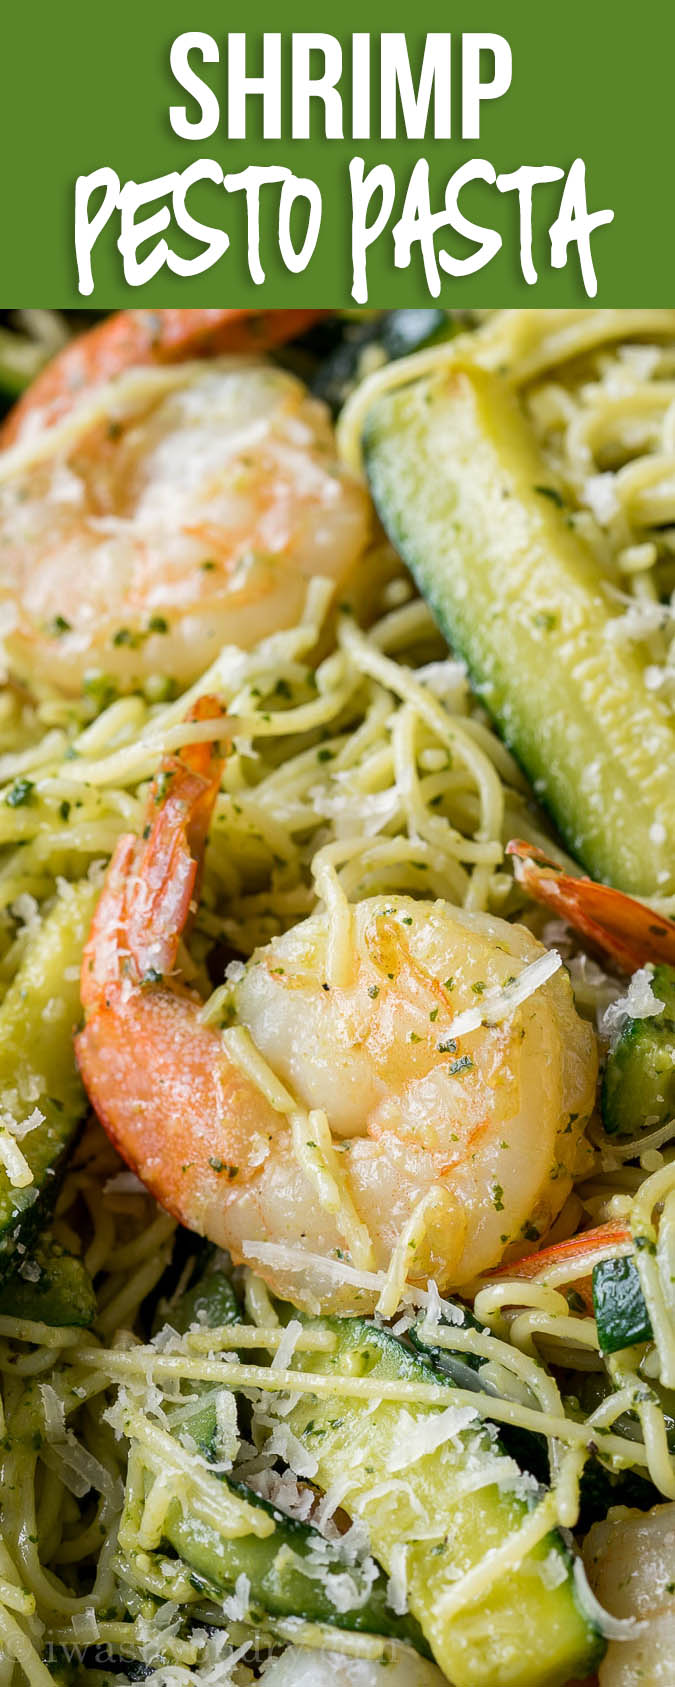 SO EASY! This Shrimp with Pesto Pasta is my new favorite easy dinner recipe!